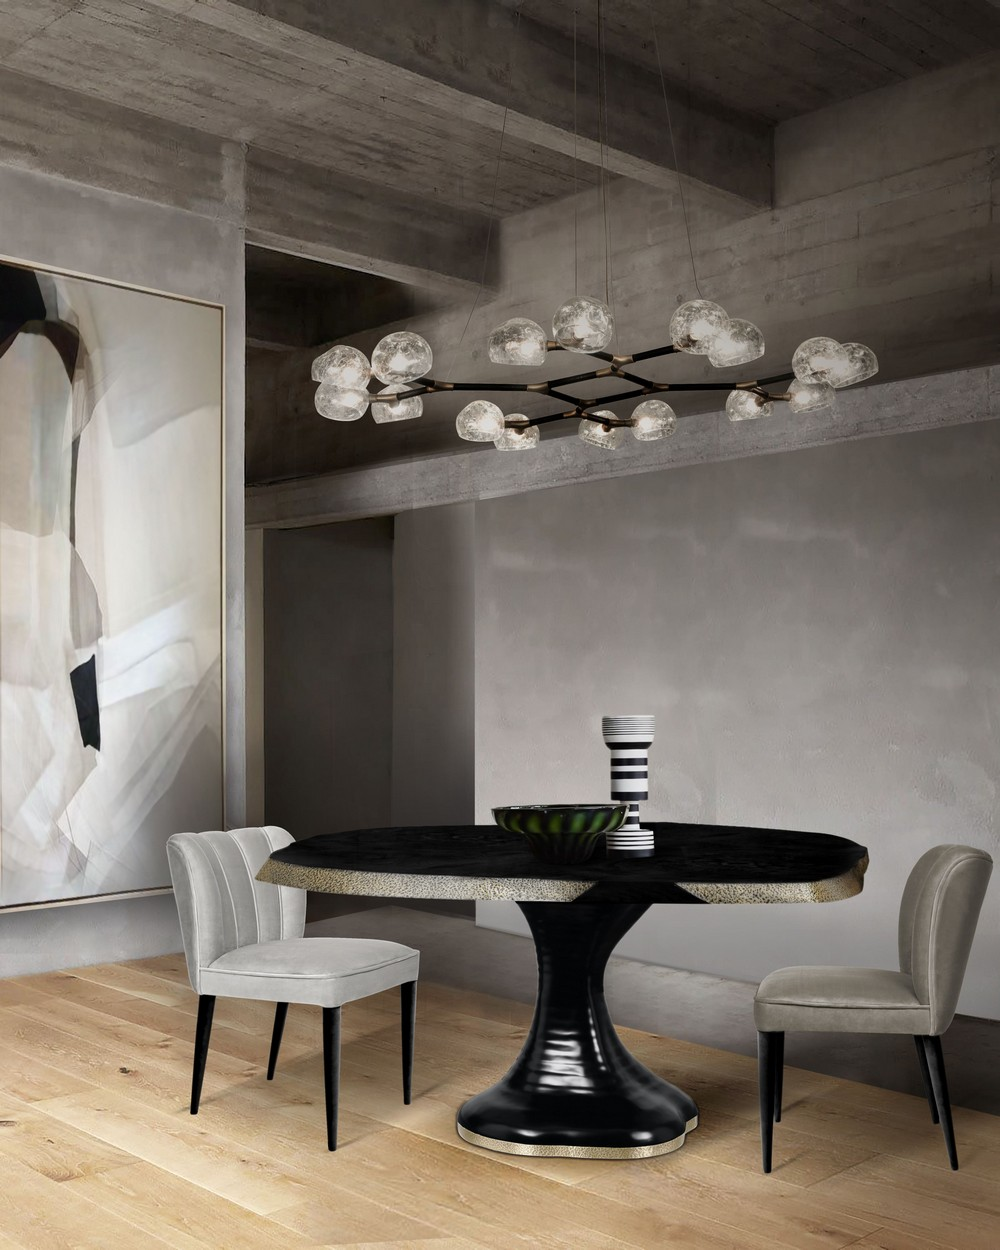 Luxury Lighting: Dining Room Ideas From Mid-century To Contemporary dining room Luxury Lighting: Dining Room Ideas From Mid-century To Contemporary Ts6Etzsw